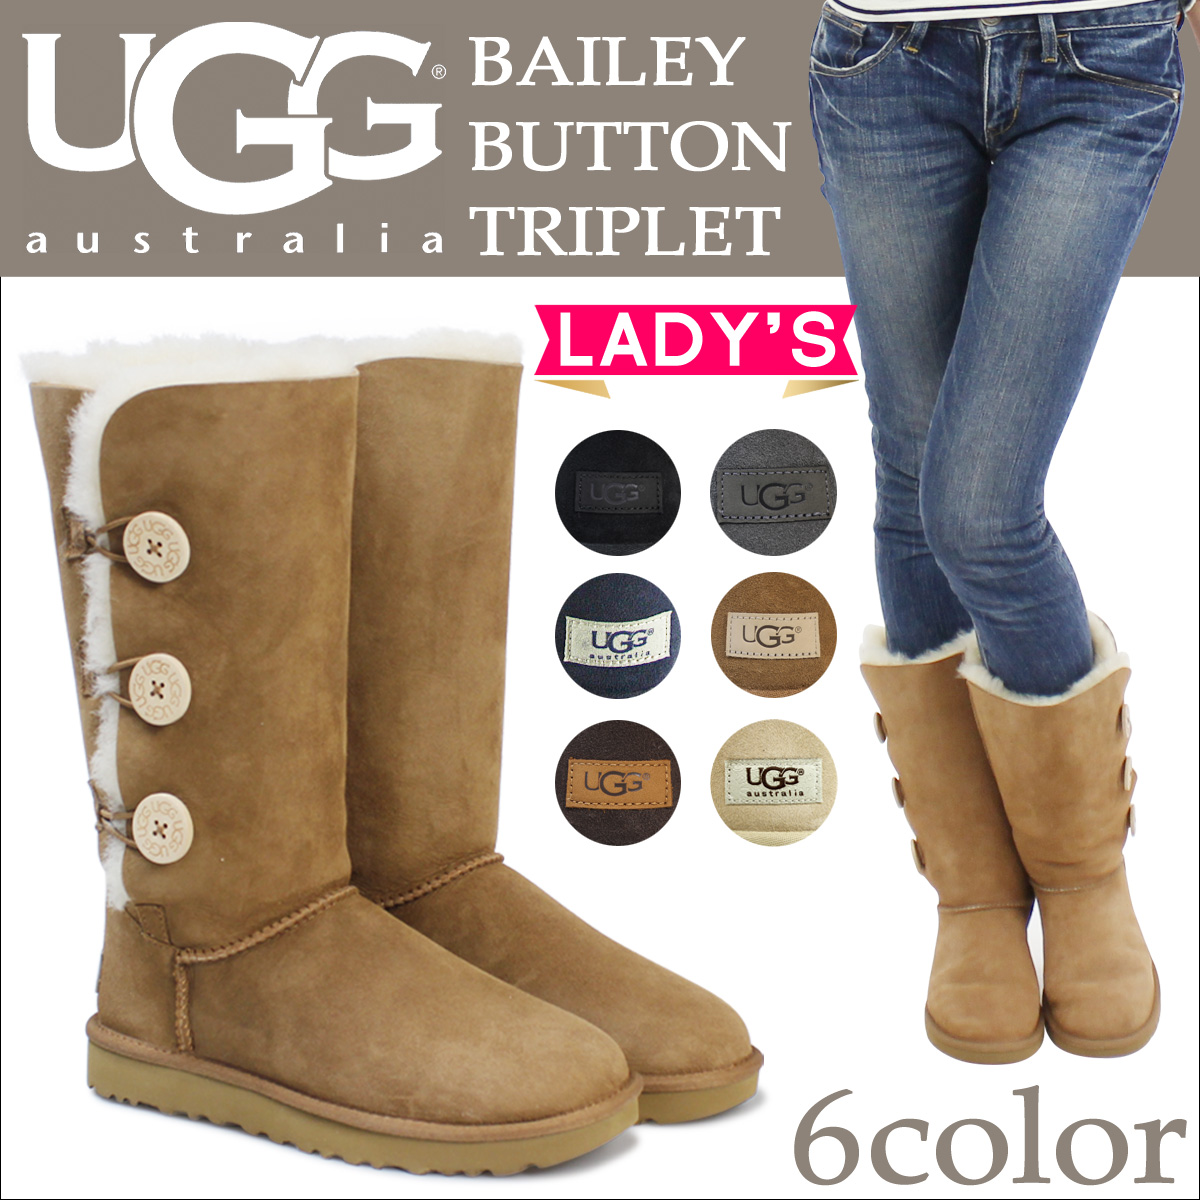 6 color UGG UGG women's Bailey button triplet boots WOMENS BAILEY BUTTON TRIPLET Sheepskin ladies Sheepskin boots 1873 [genuine]